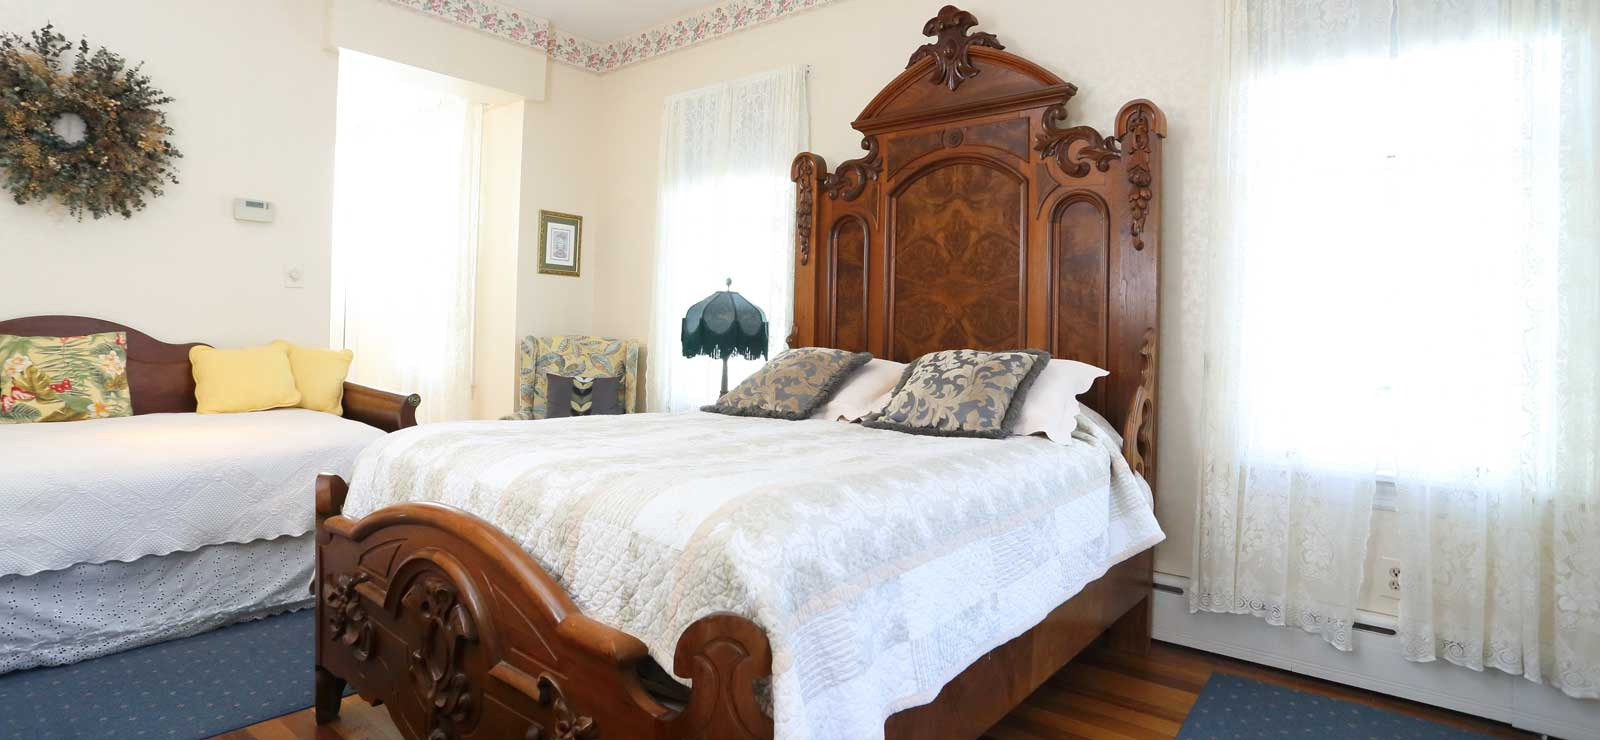 Beauclaires SuiteQueen and Twin Bed • Private Bath with Jacuzzi & Shower • 2nd Floor